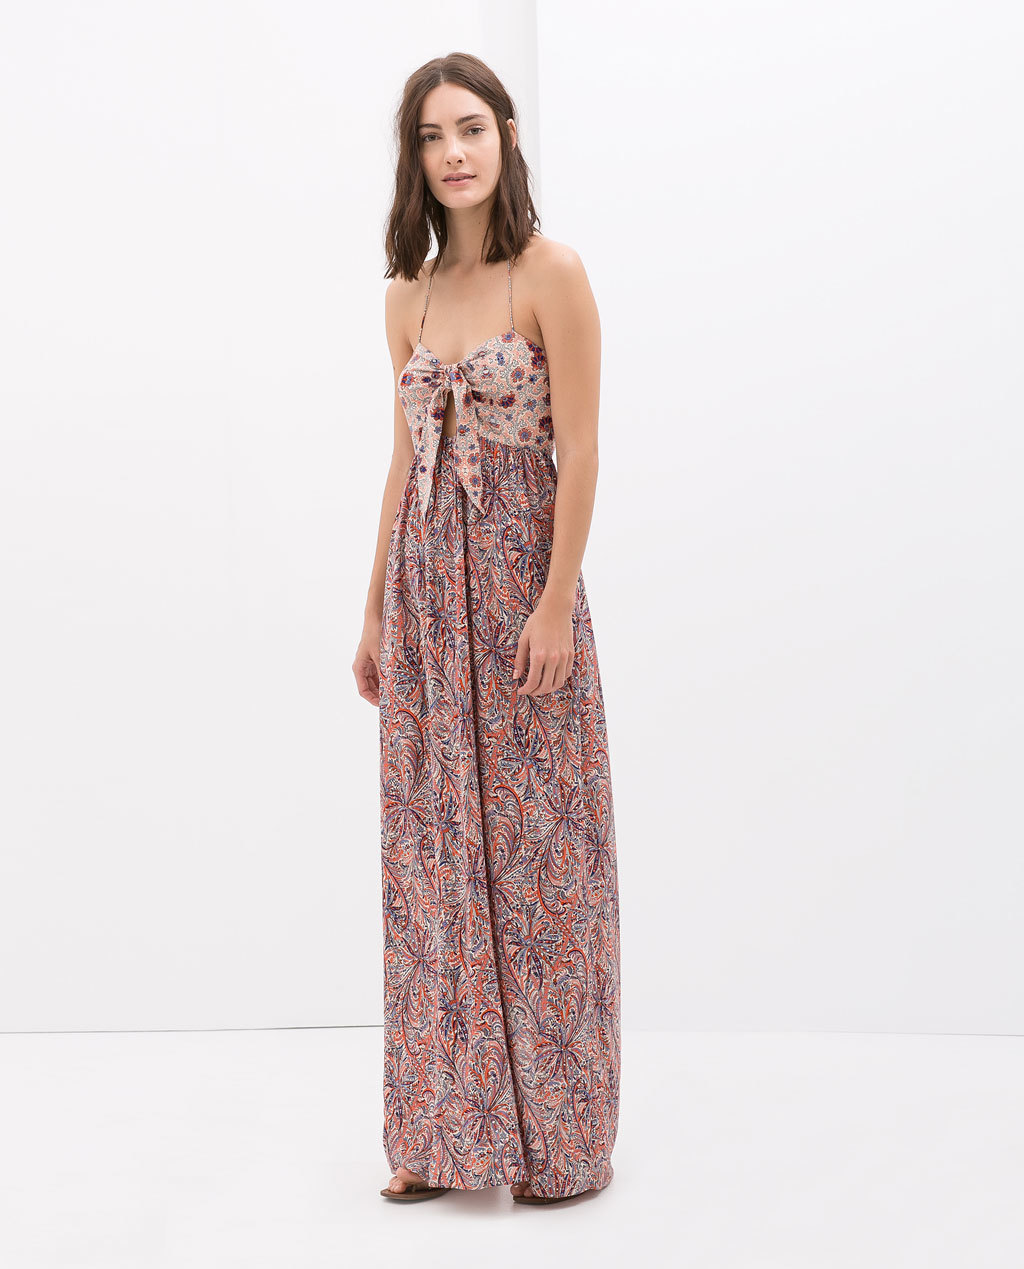 Long Printed Dress - sleeve style: spaghetti straps; fit: empire; style: maxi dress; bust detail: knot twist front detail at bust; occasions: casual, evening, holiday, creative work; length: floor length; neckline: scoop; fibres: viscose/rayon - 100%; predominant colour: multicoloured; sleeve length: sleeveless; texture group: cotton feel fabrics; pattern type: fabric; pattern size: big & busy; pattern: patterned/print; season: s/s 2014; multicoloured: multicoloured